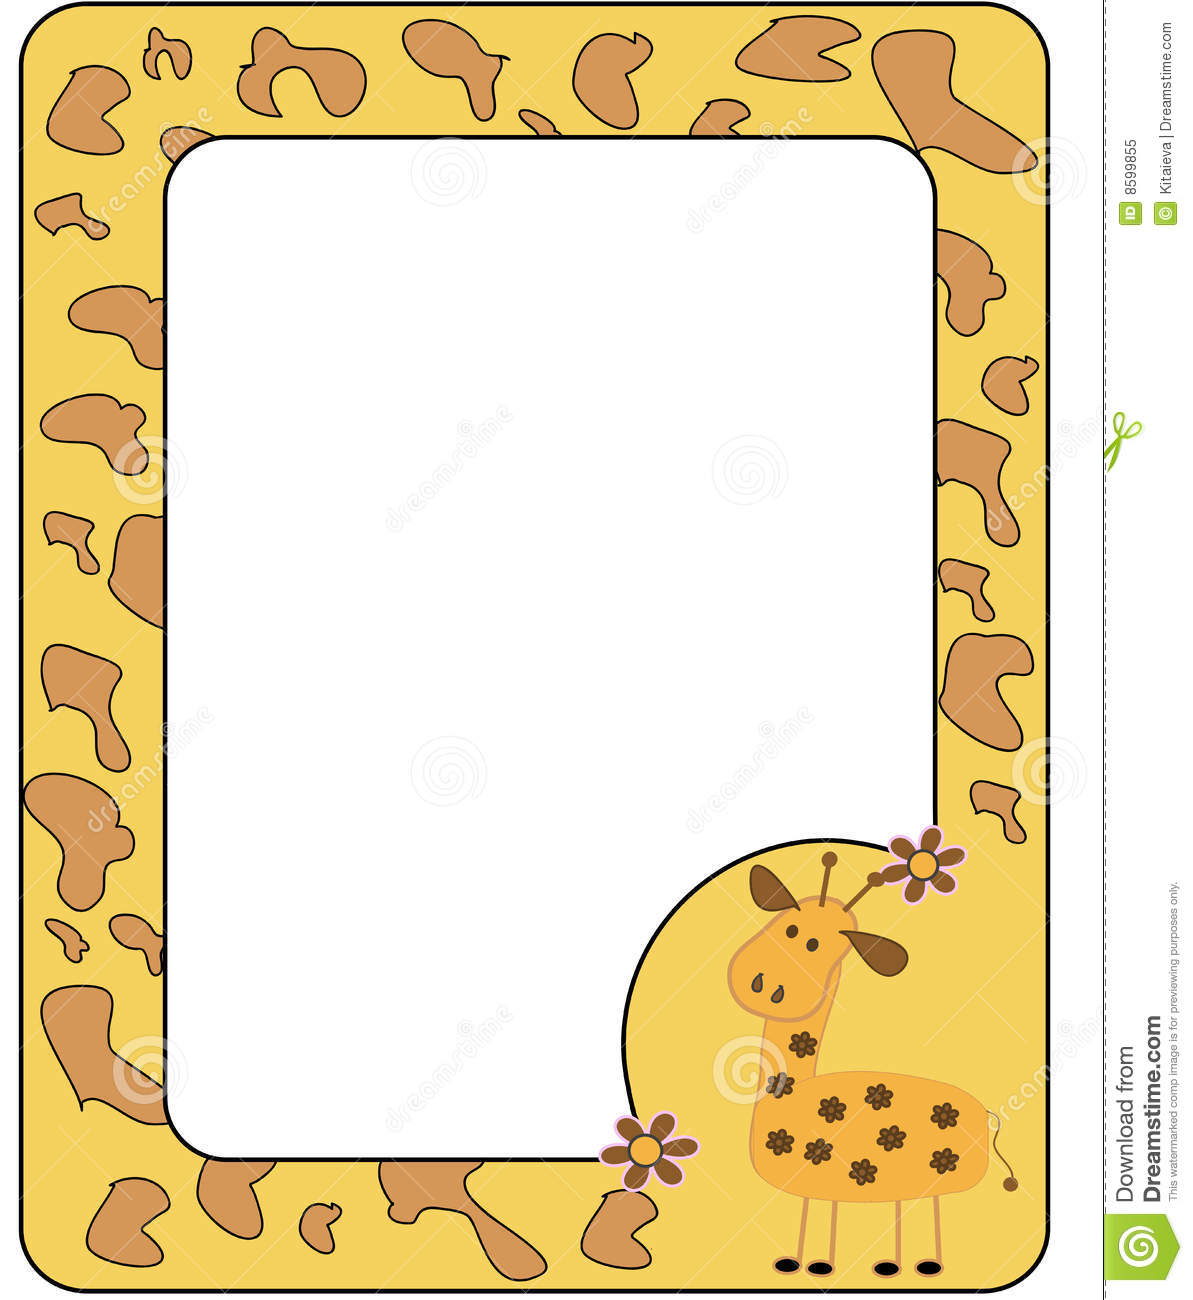 Animal Print Wallpaper Border Frame With Giraffe Royalty Free Stock Photo Image 8599855